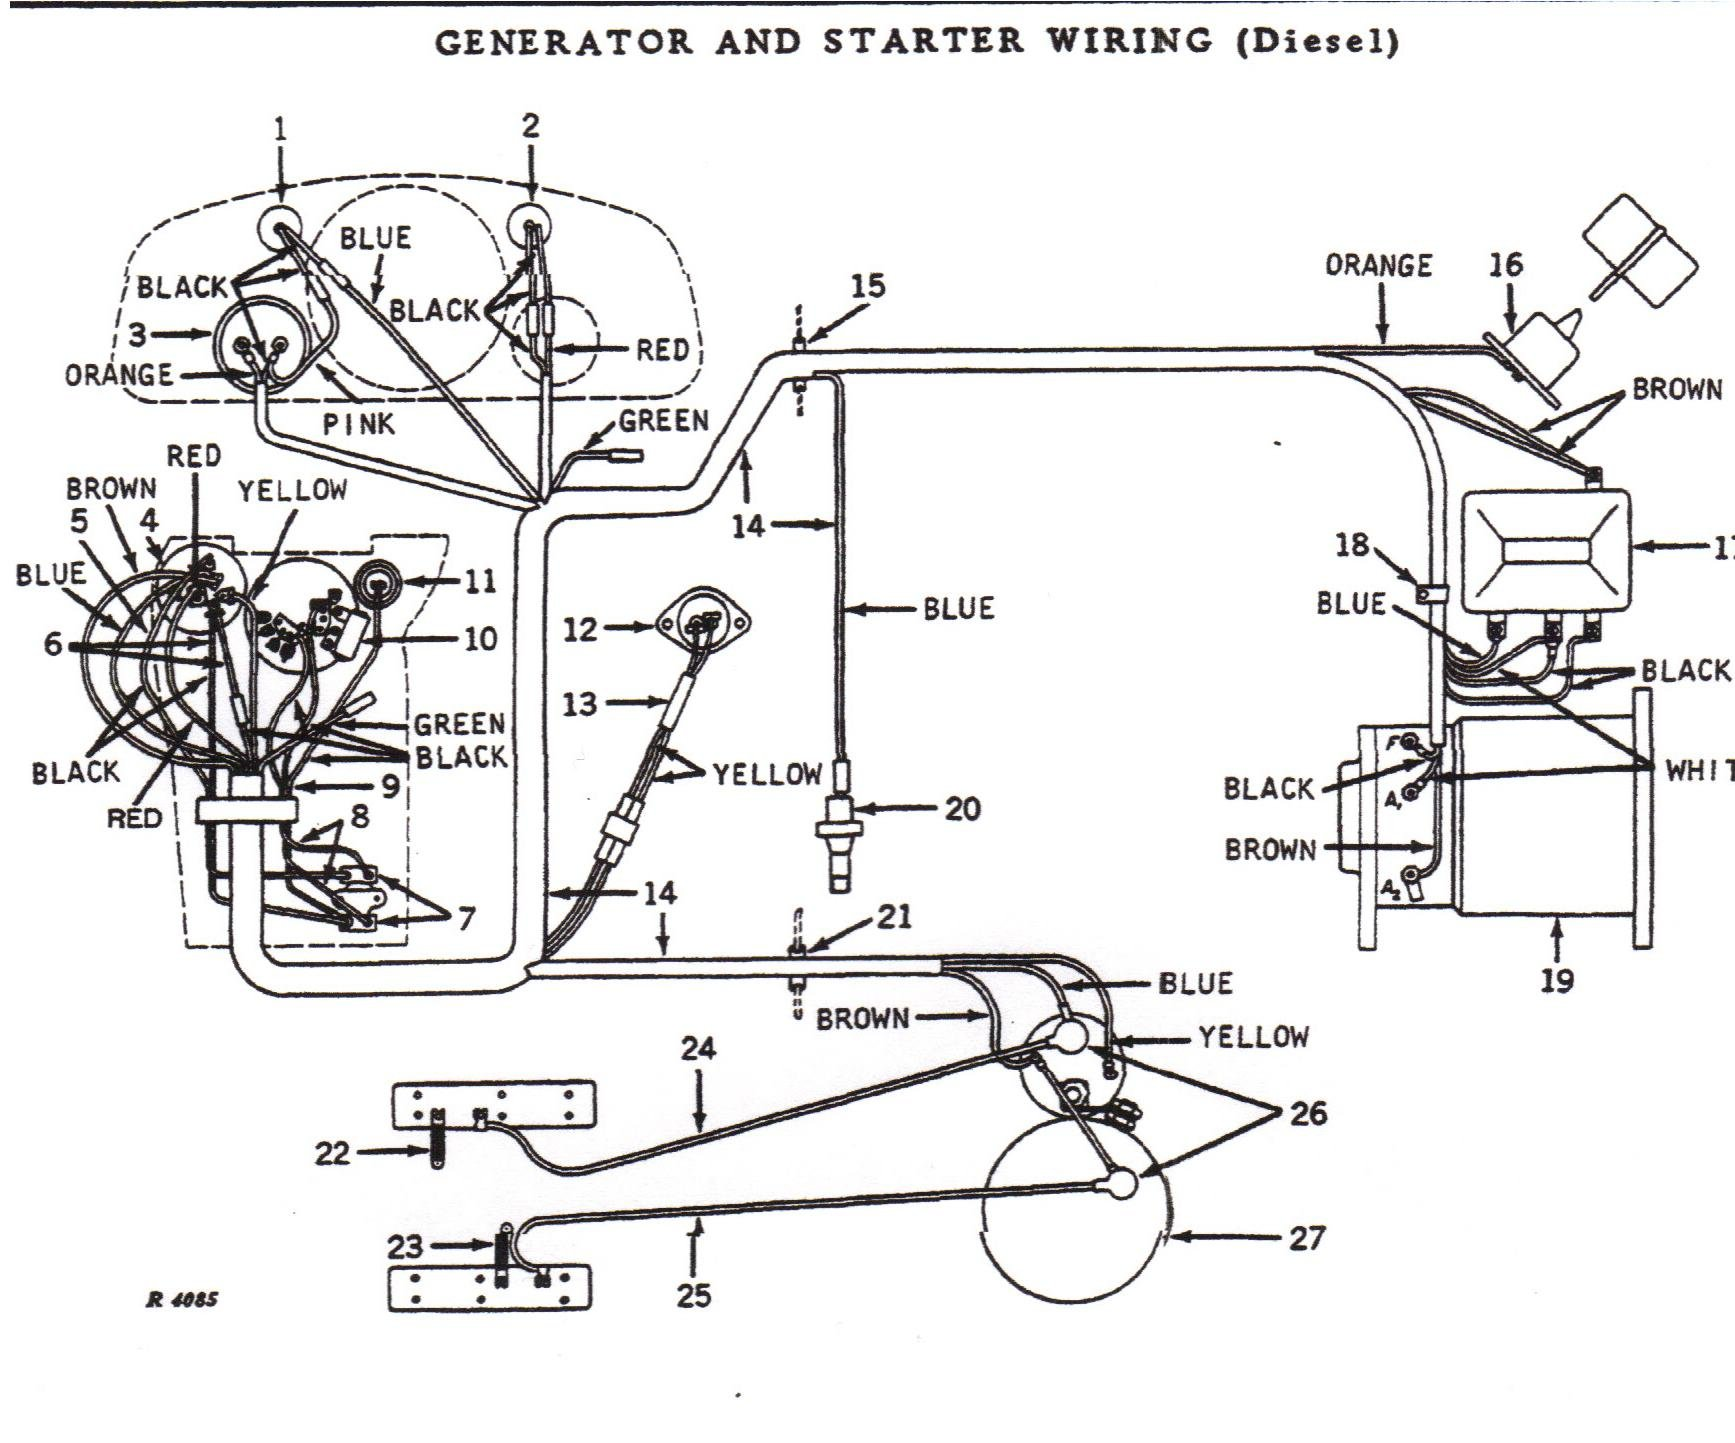 john deere 316 wiring diagram  john  free engine image for